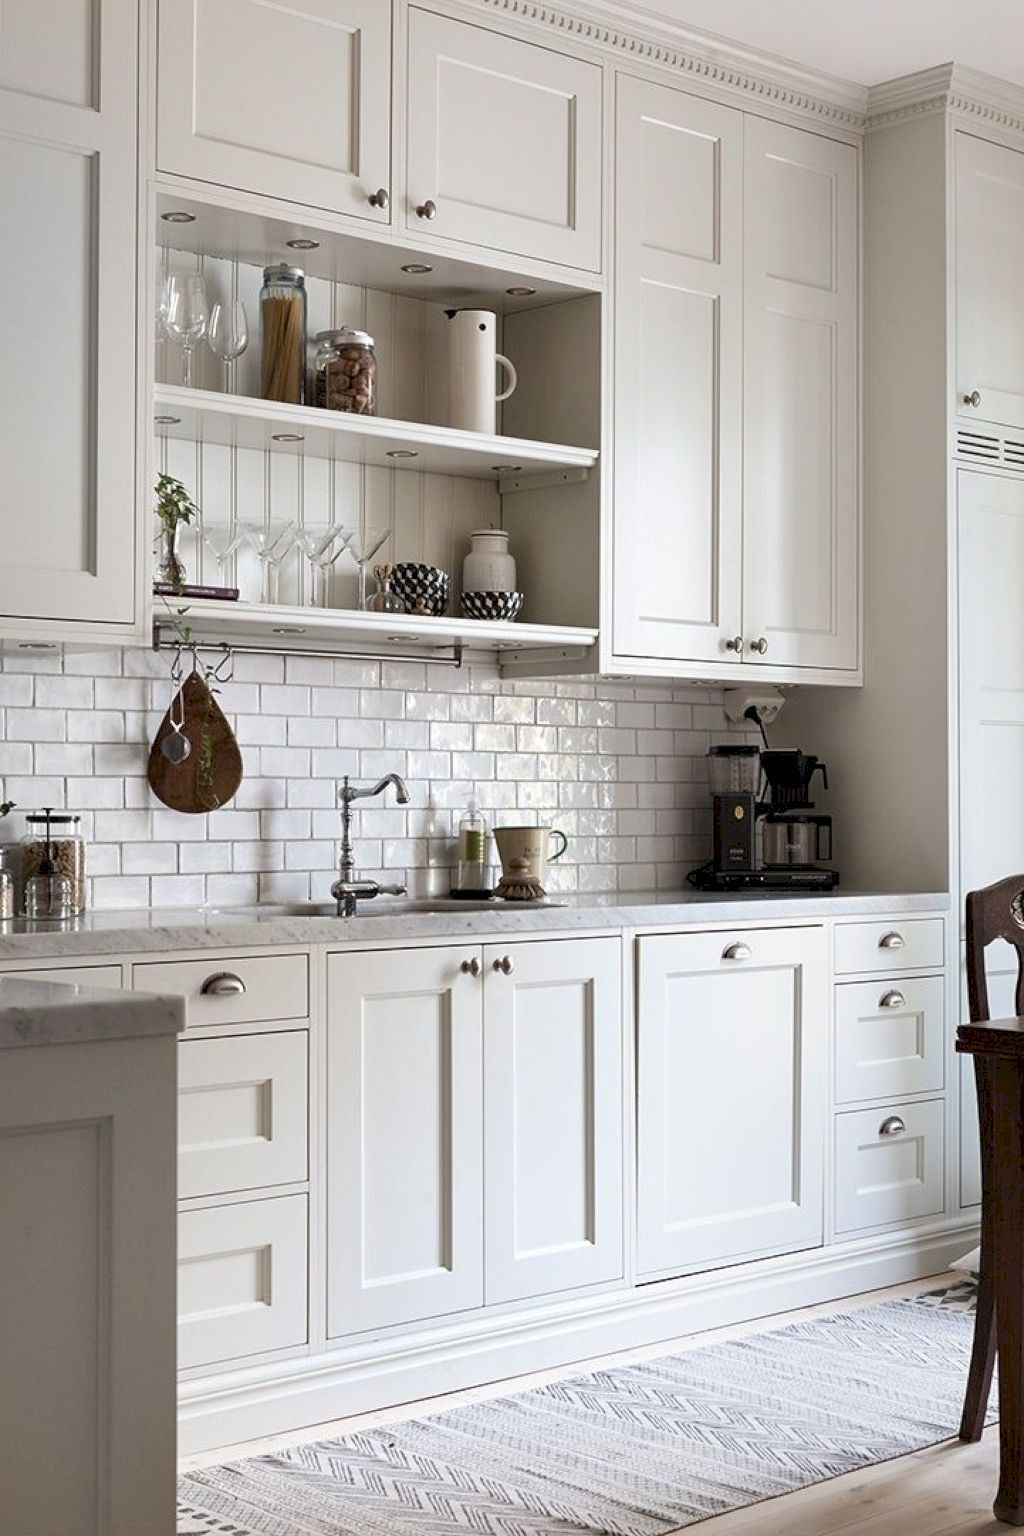 84 Stunning White Kitchen Design And Decor Ideas Kitchen Cabinet